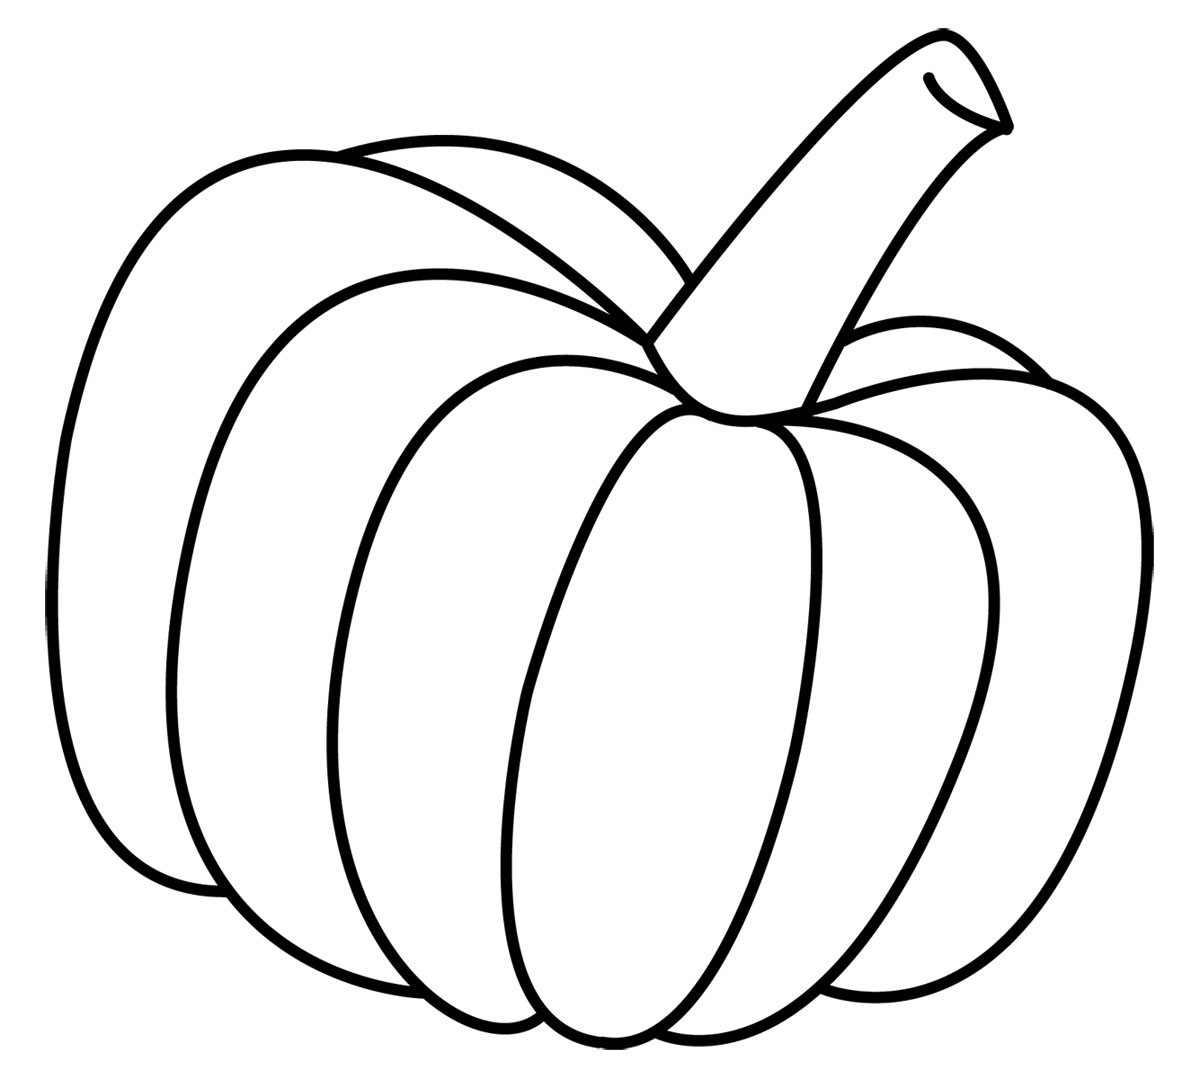 pumpkin clip art black and white clipart panda free clipart images rh clipartpanda com pumpkin pie clipart black and white pumpkin clipart black and white free